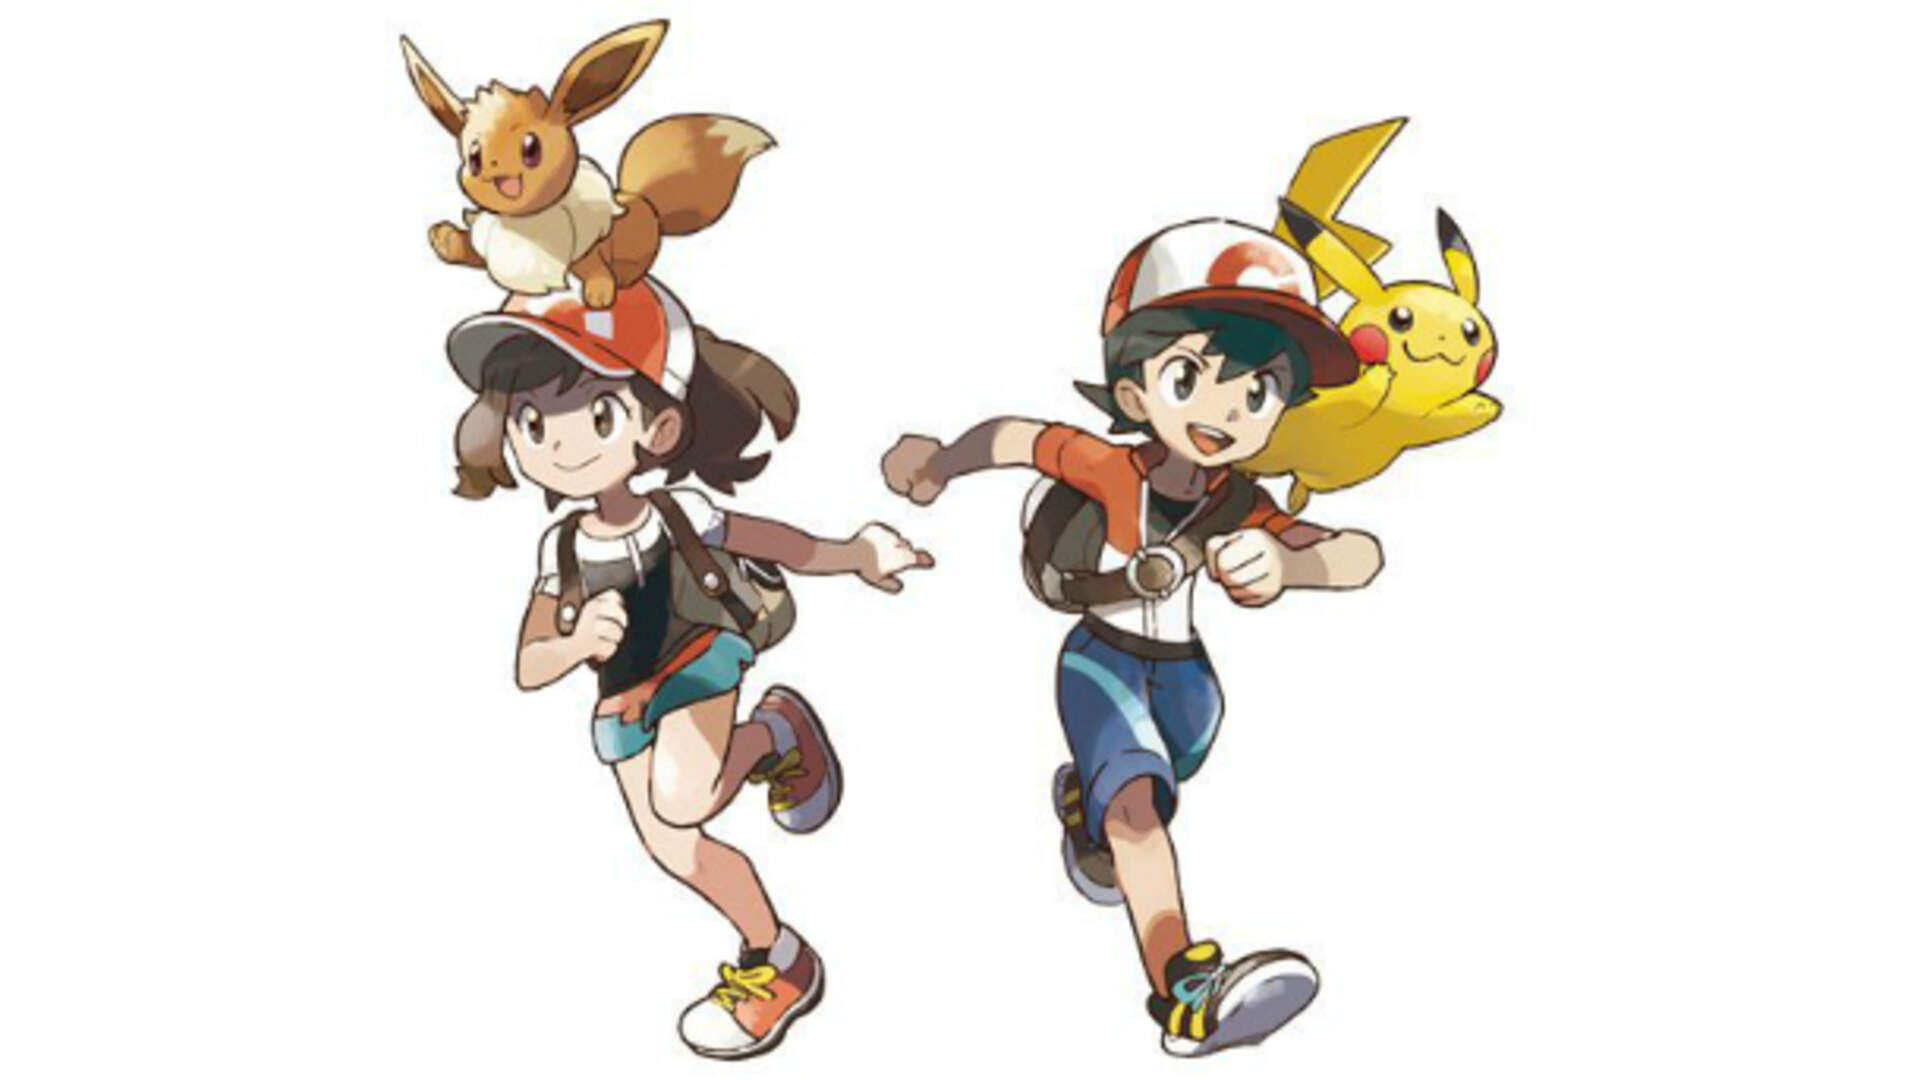 Pokemon Let's Go May Stop You From Challenging Gym Leaders if you Lack Certain Pokemon Types